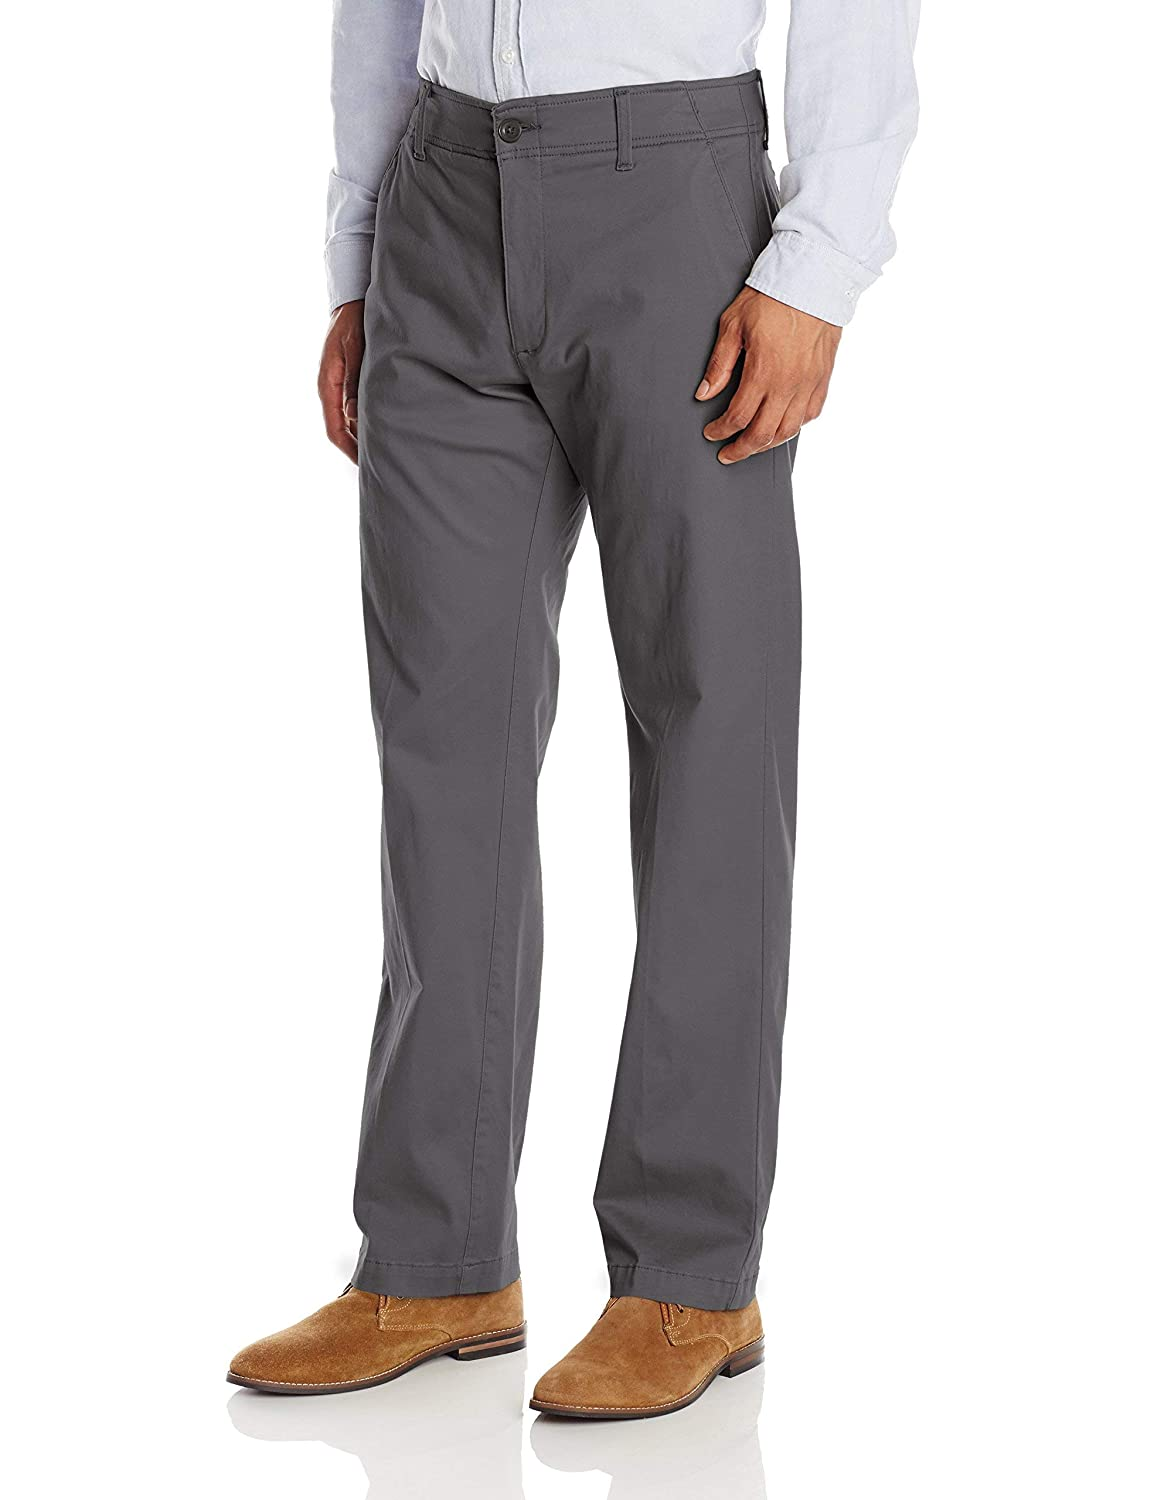 LEE Mens Big /& Tall Performance Series Extreme Comfort Pant Lee Men/'s Sportswear 43735